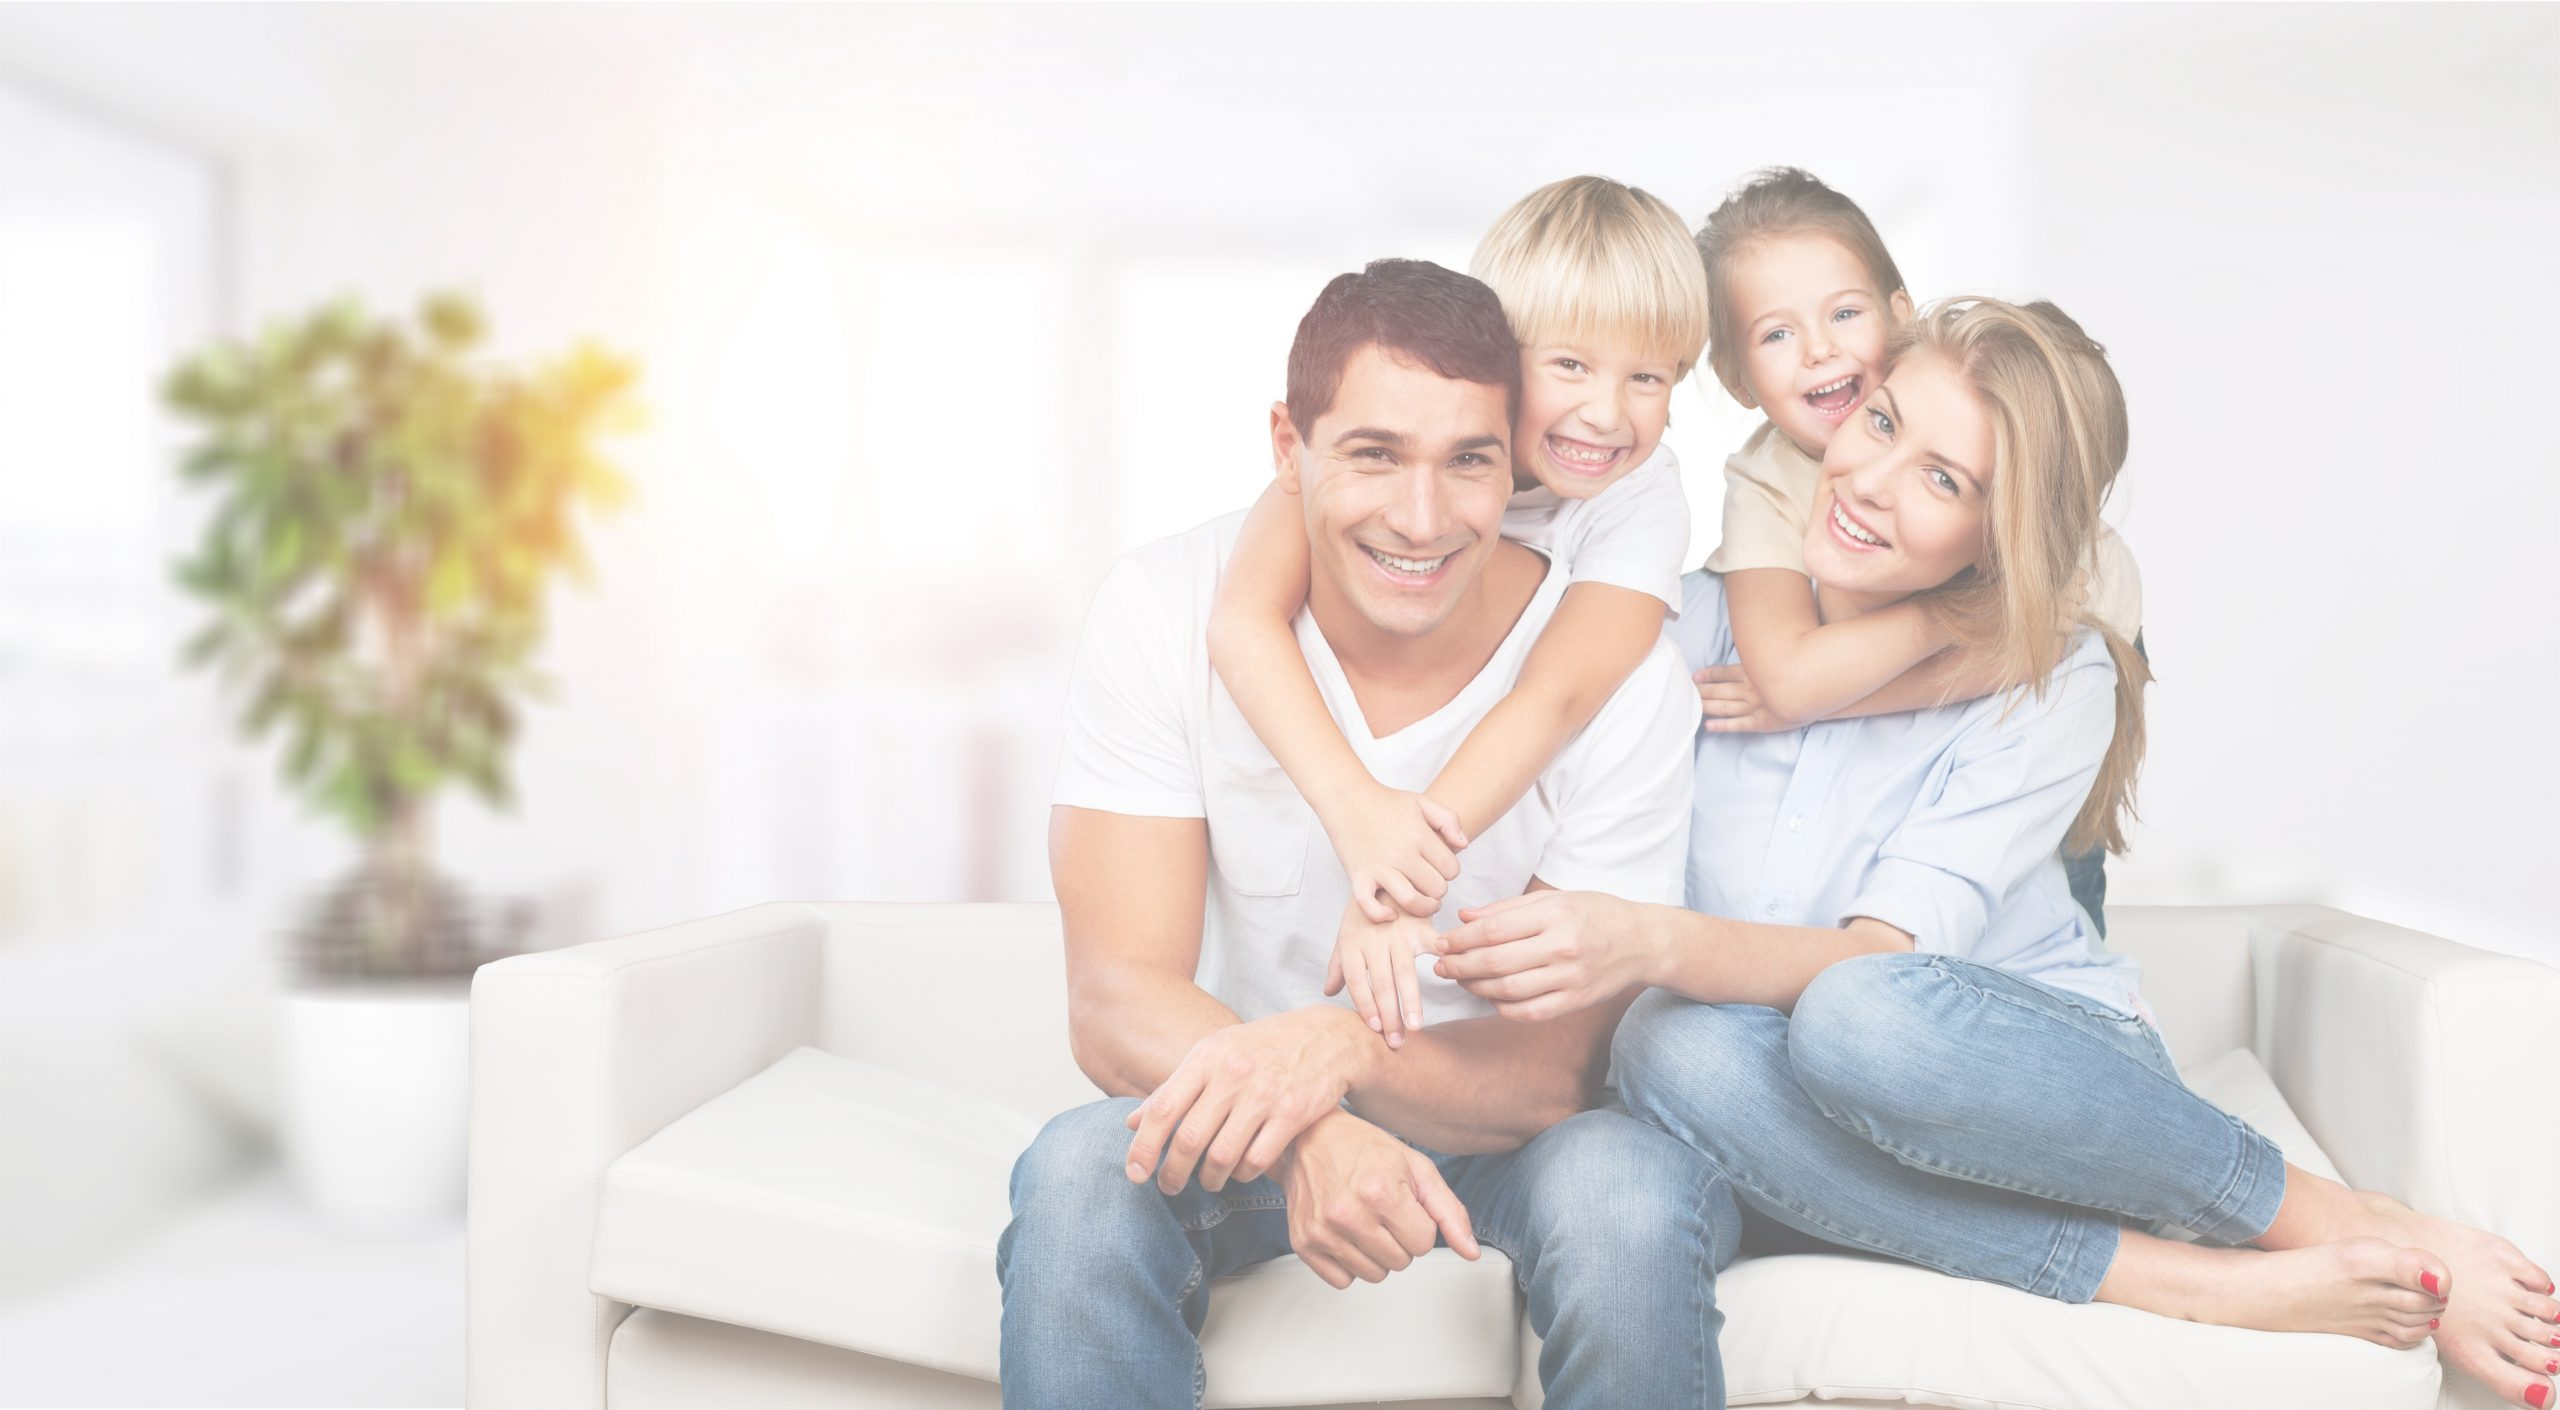 Family in their home with white overlay